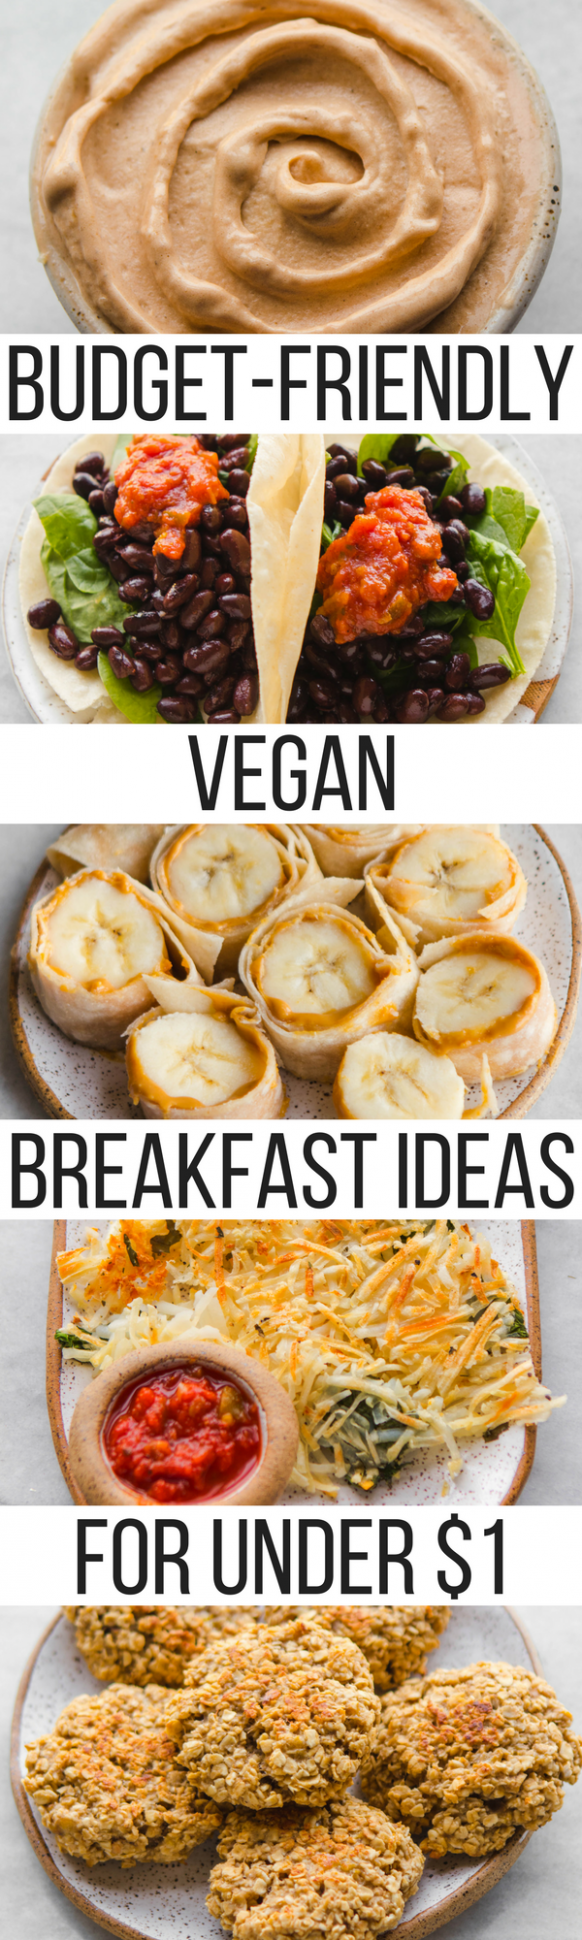 Budget Friendly Vegan Breakfast Ideas for Under $10 - From My Bowl - Breakfast Recipes Cheap